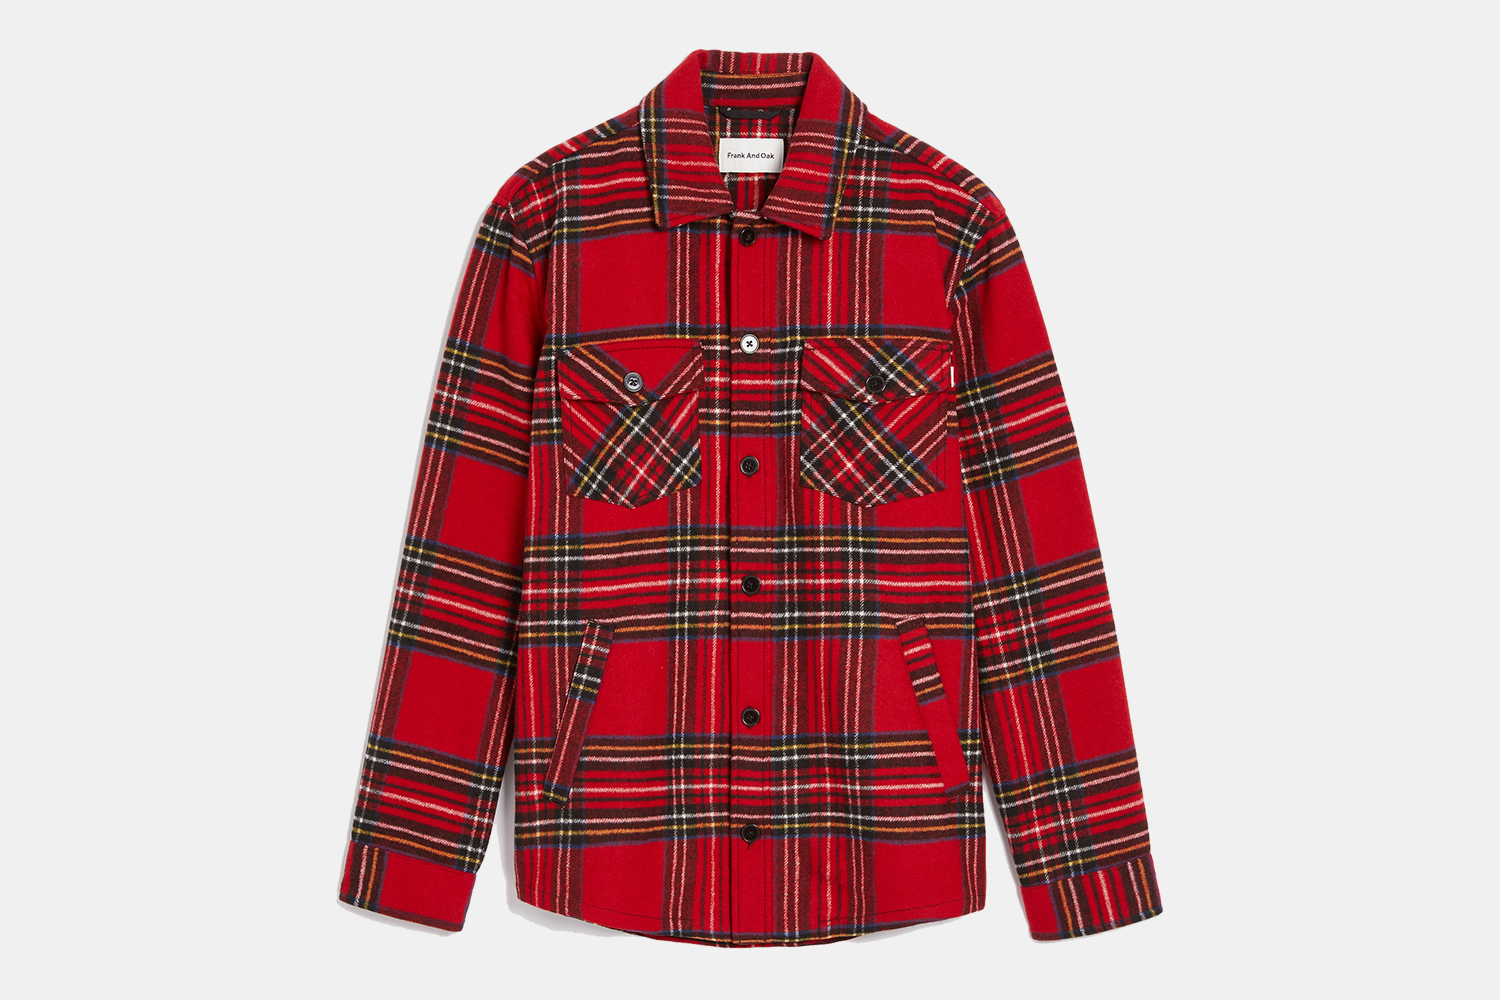 Frank And Oak Men's Heavy Checked Flannel Overshirt Sale